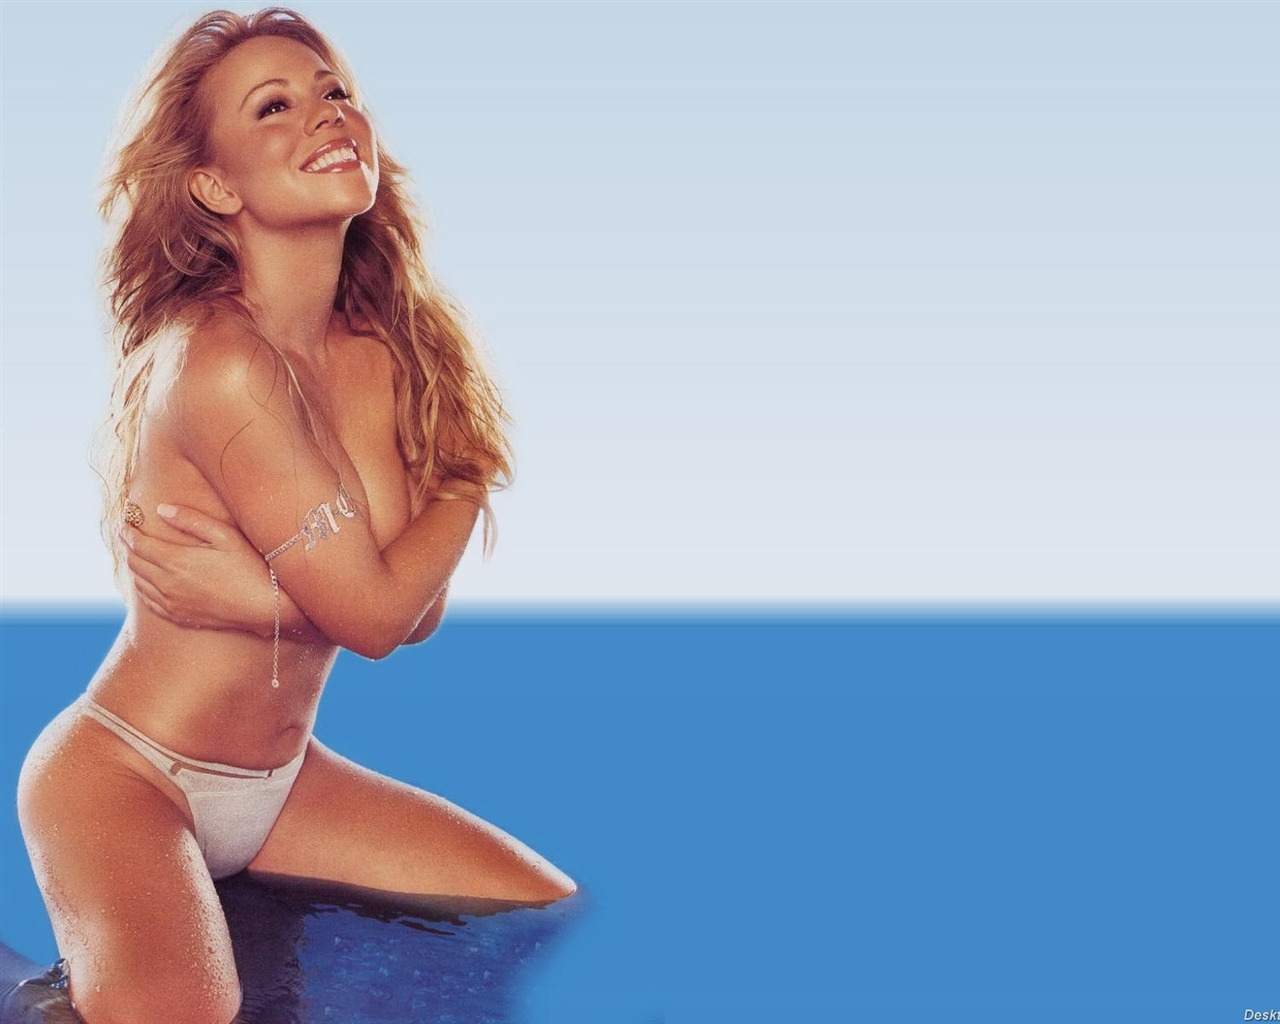 Mariah Carey #034 - 1280x1024 Wallpapers Pictures Photos Images